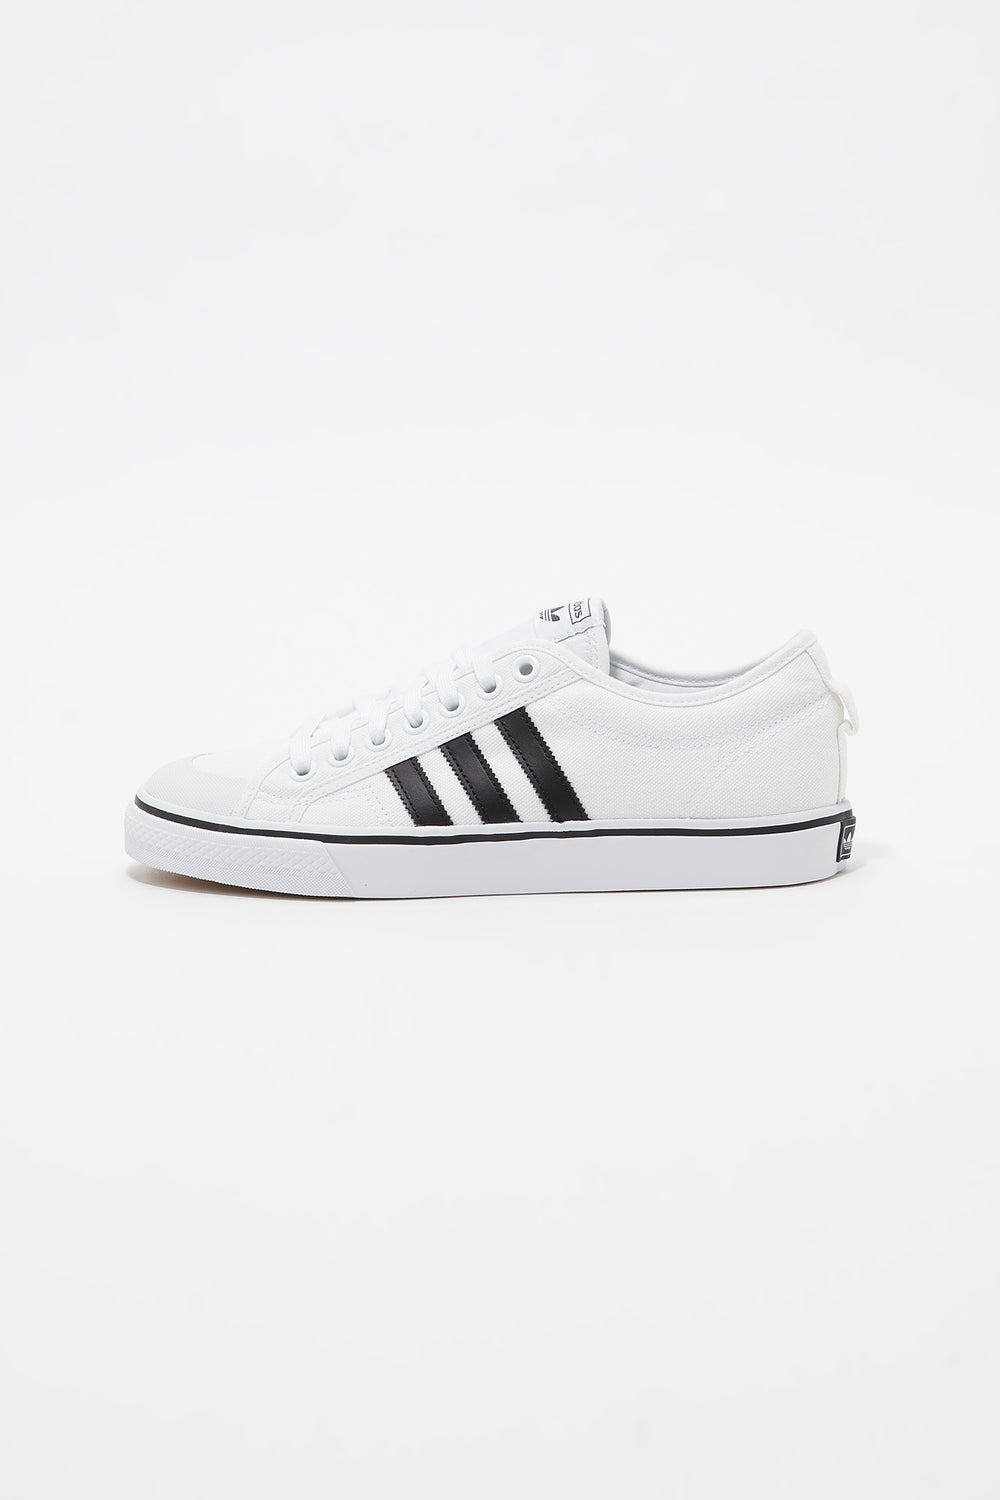 Adidas Mens White Nizza Shoes White